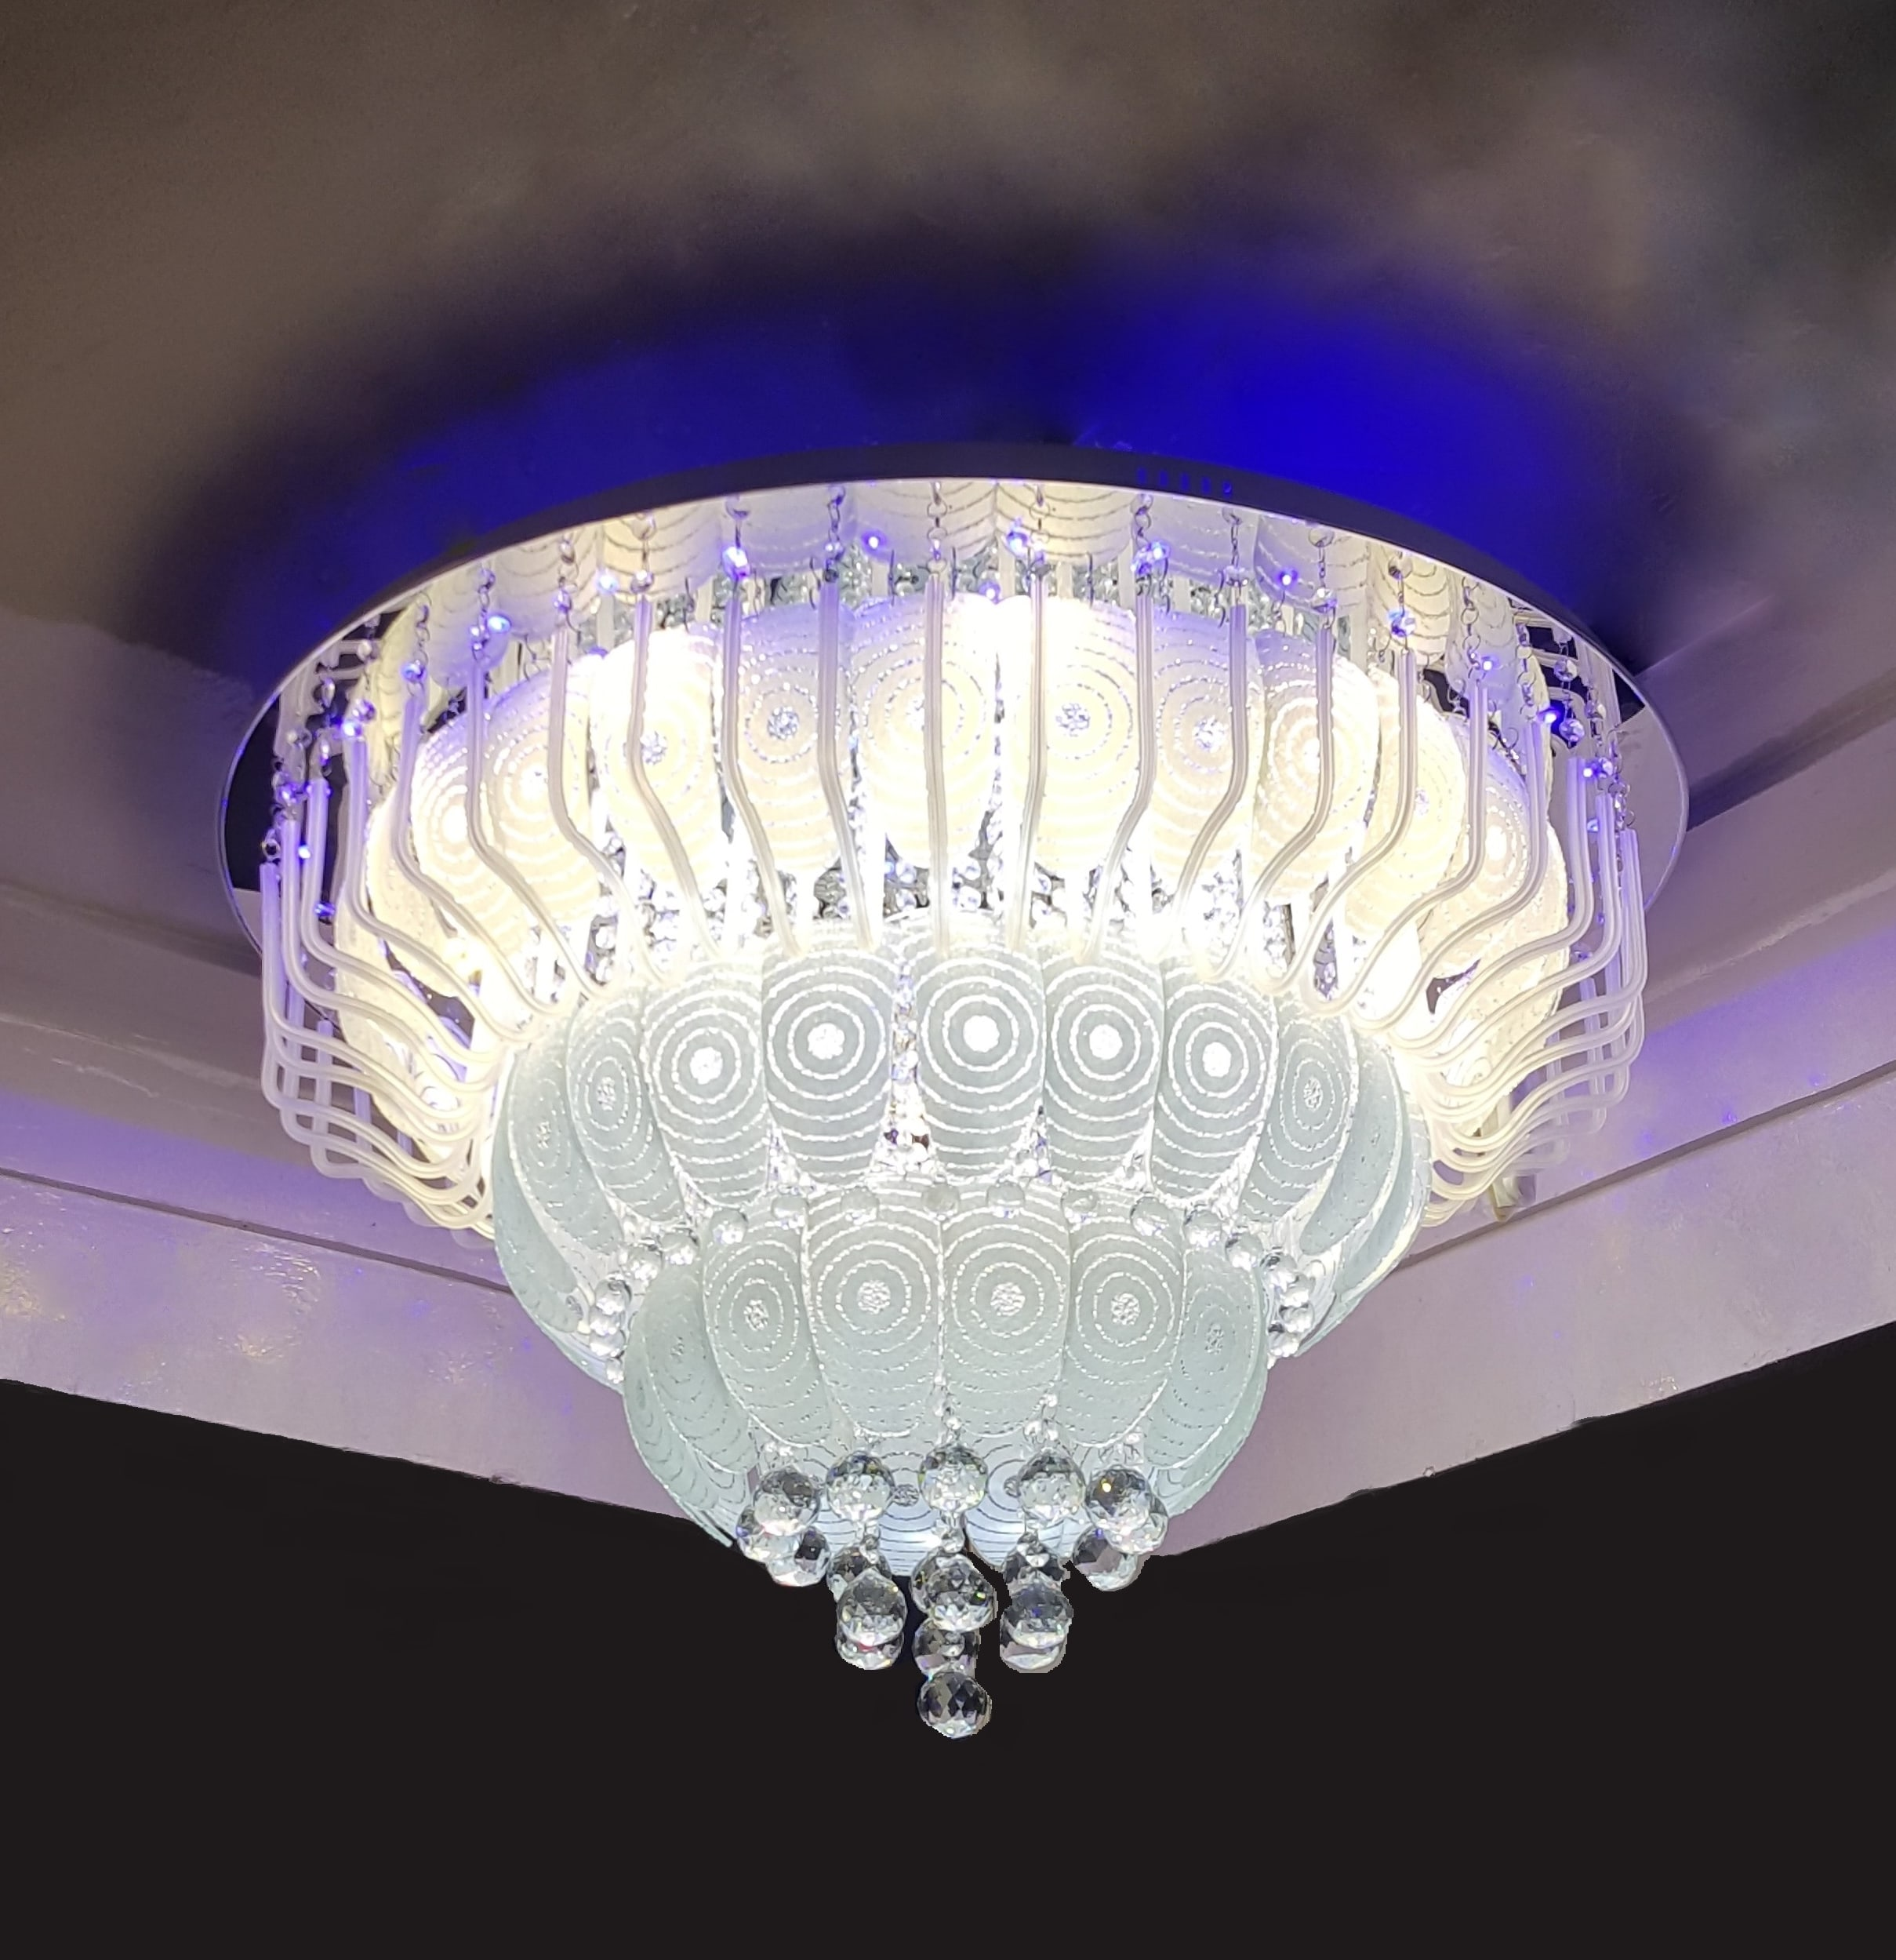 Perfect ... Jhoomer For Home Decorated Light. 1000mm Chandeliers Online In India